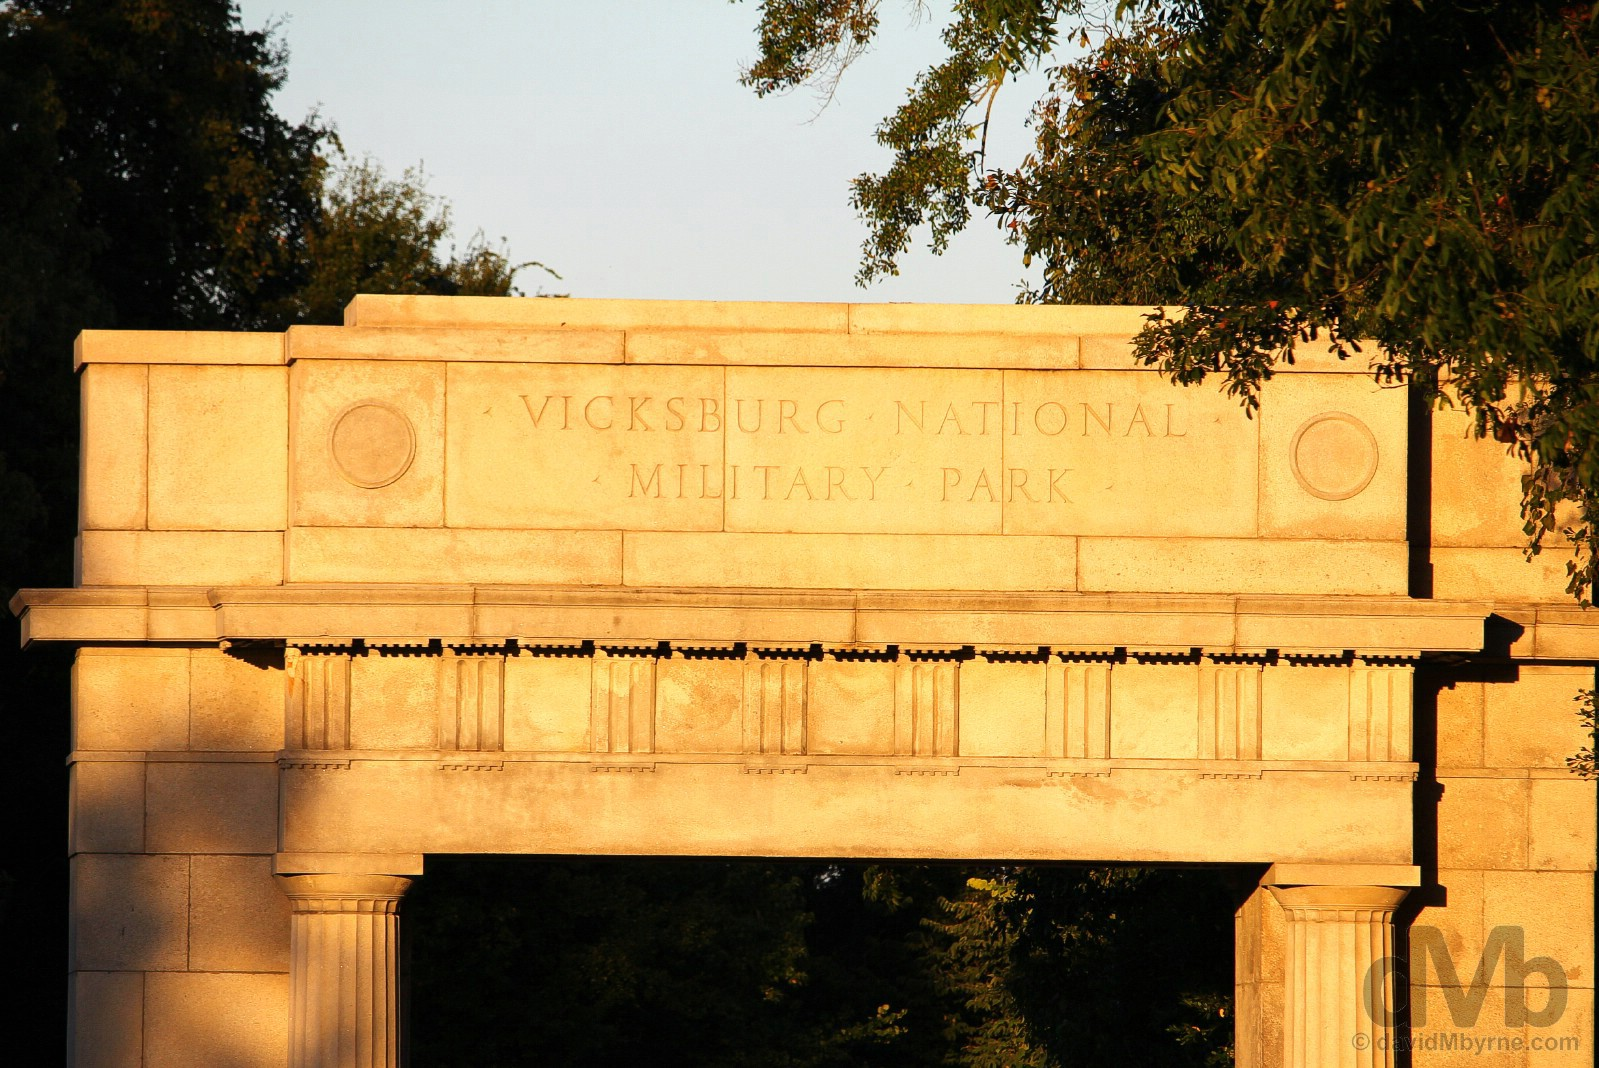 Sunset at the entrance to the Vicksburg National Military Park, Vicksburg, Mississippi, USA. September 19, 2016.